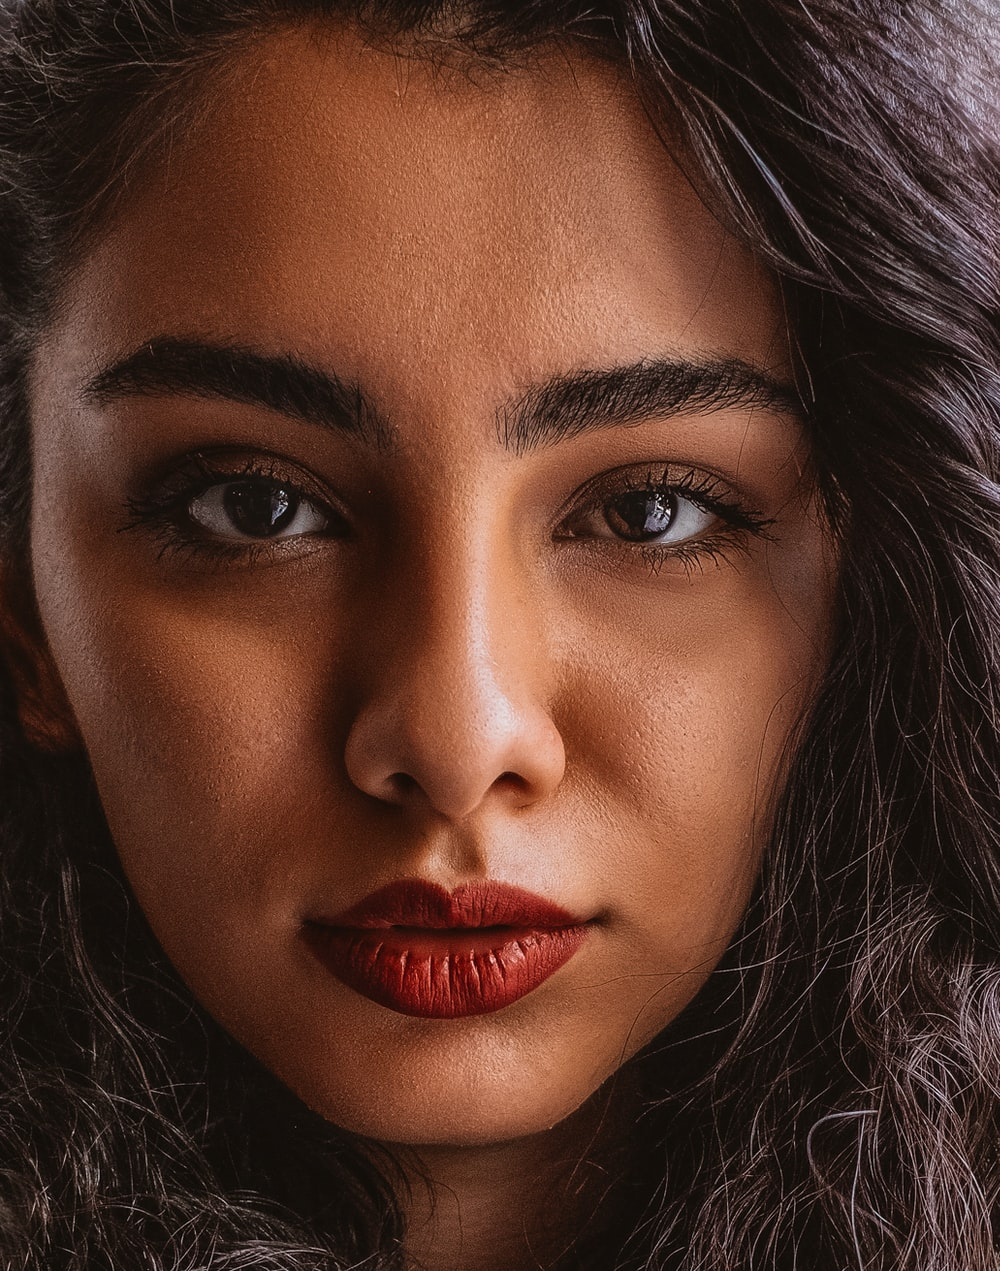 100 Portraits Pictures Download Free Images On Unsplash